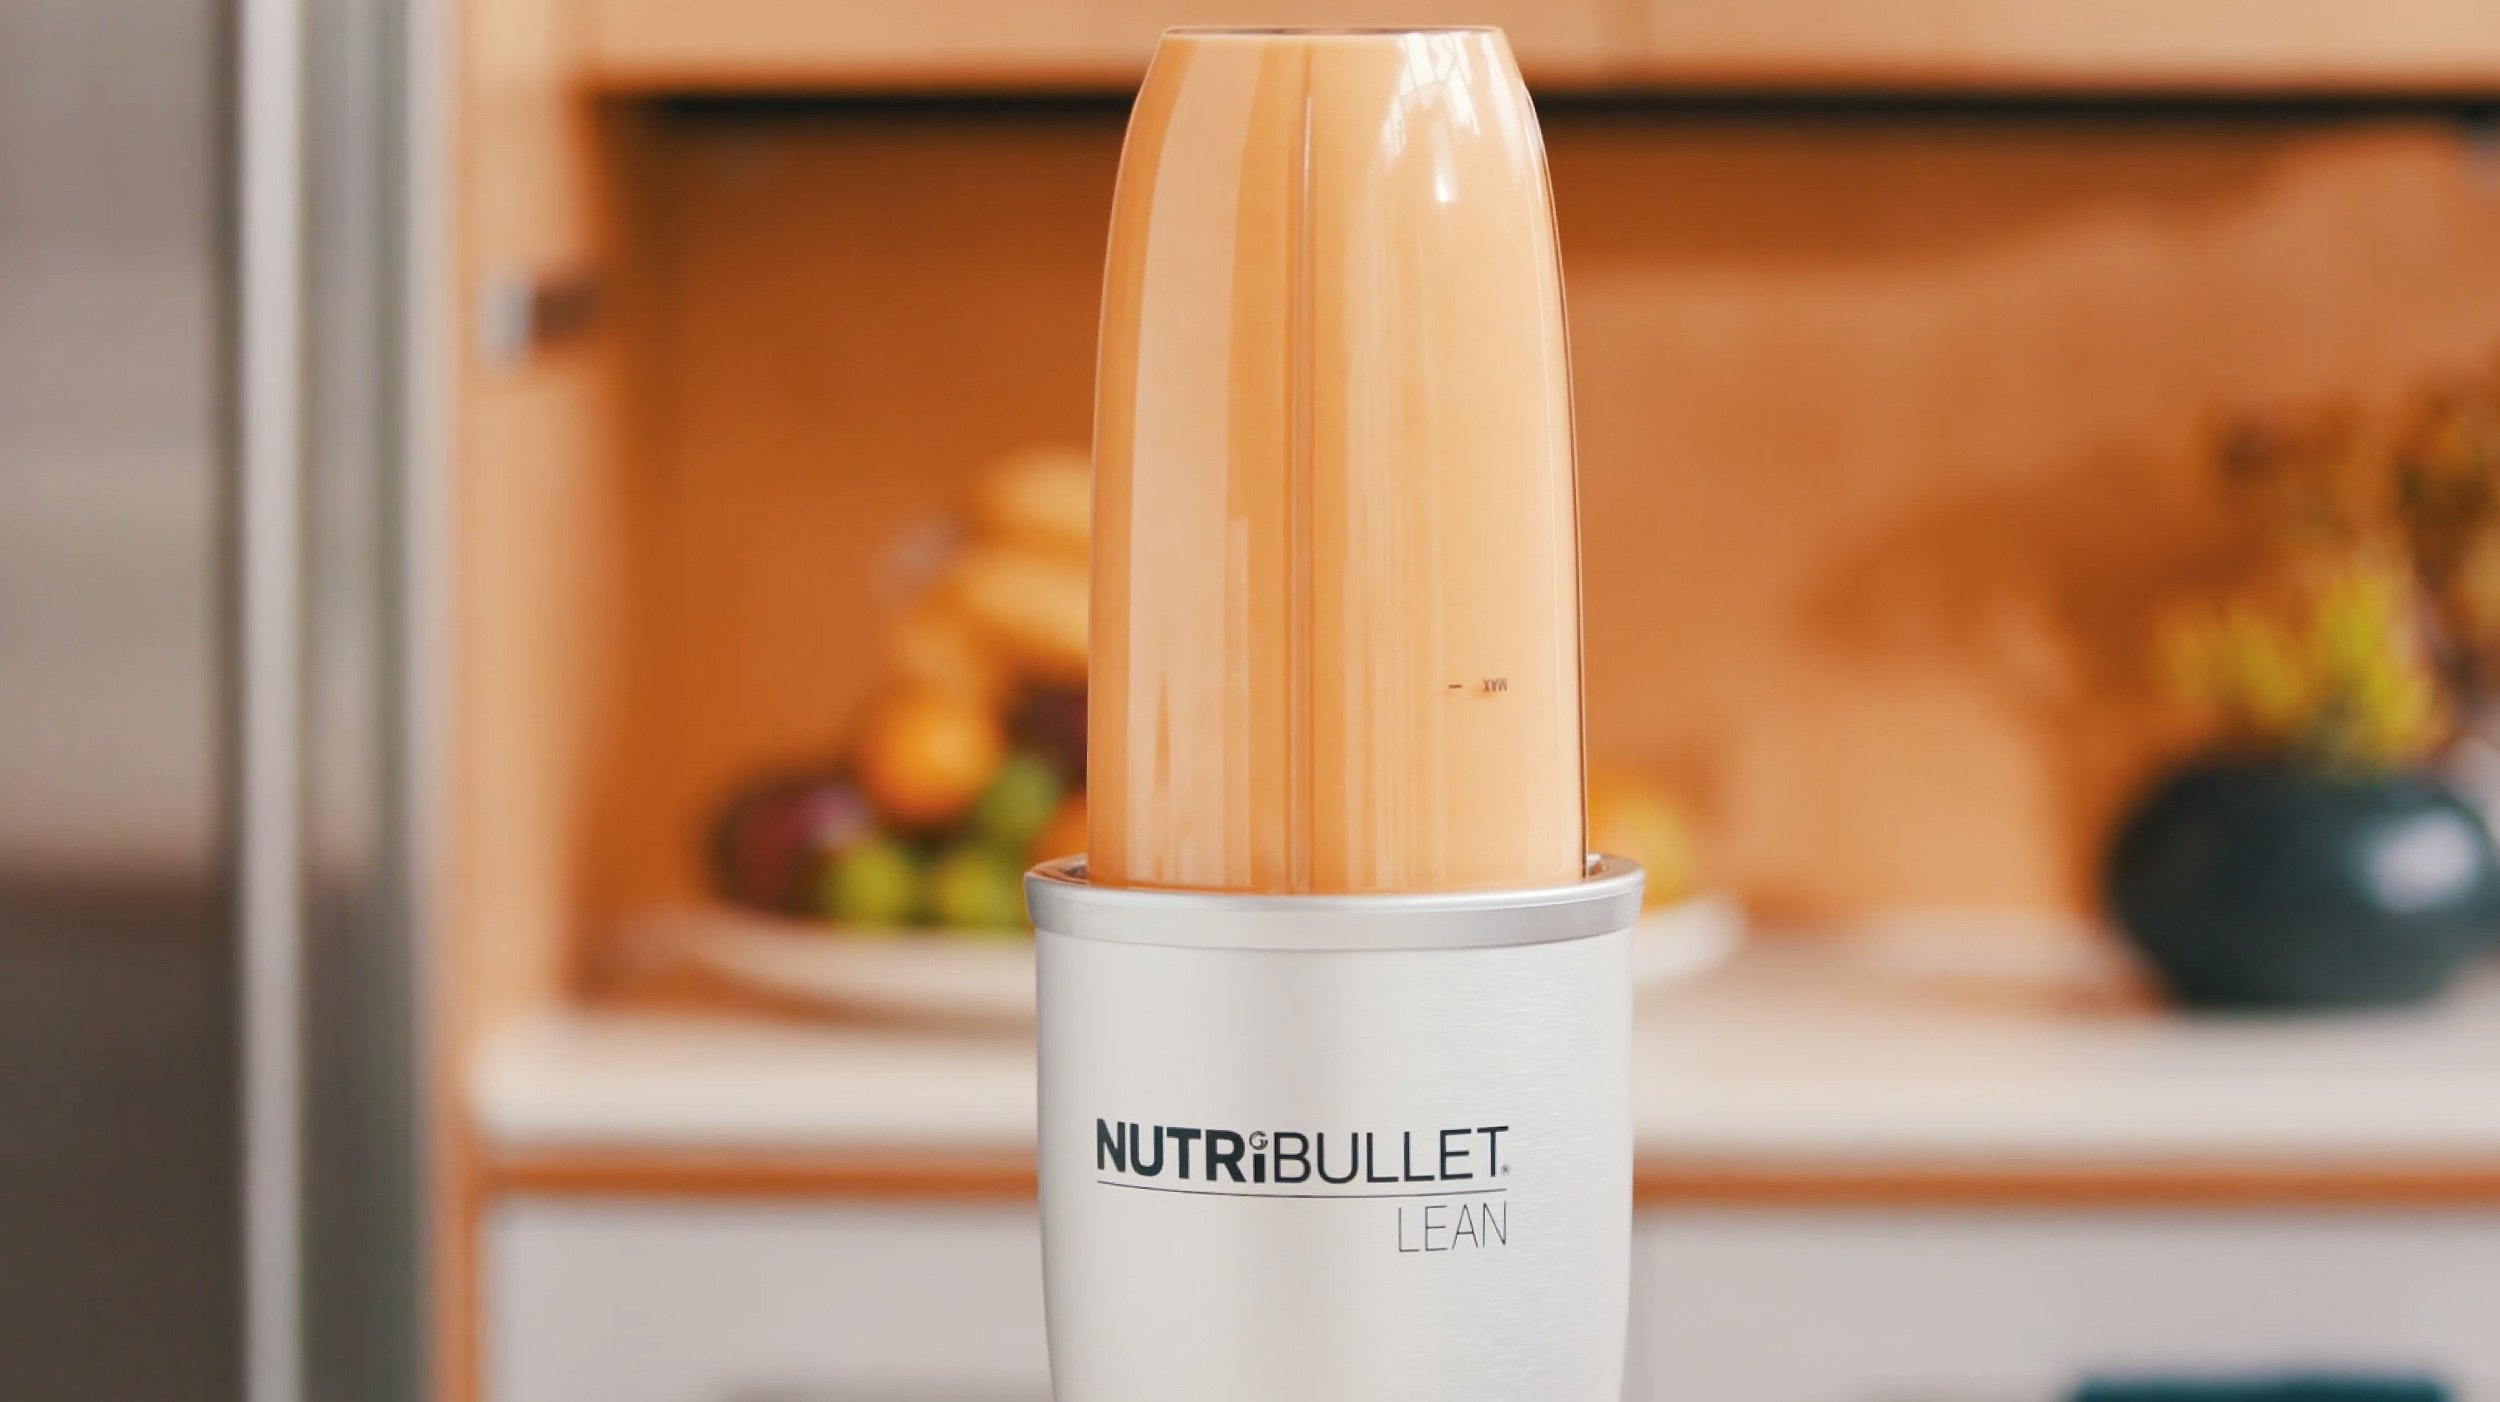 NutriBullet - COMMERCIAL FOR THE UBIQUITOUS BLENDER